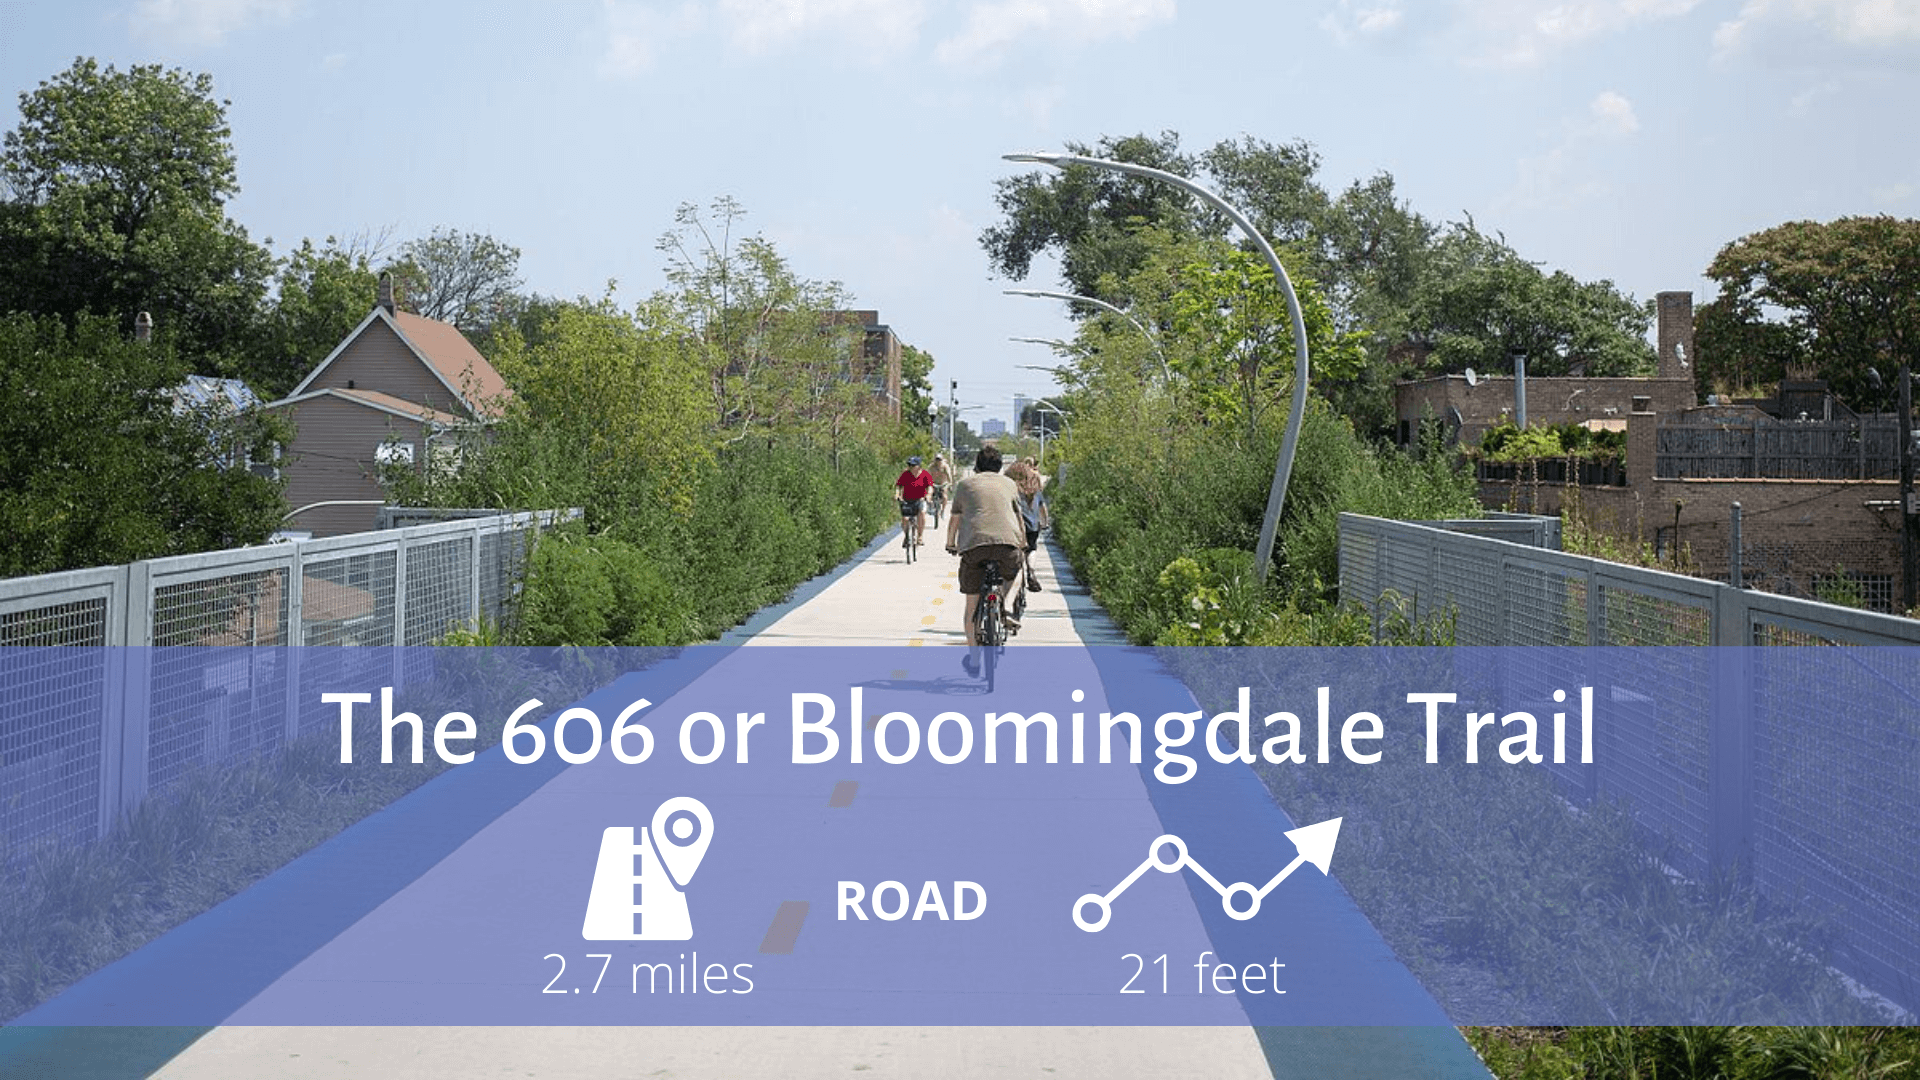 The-606-or-Bloomingdale-Trail